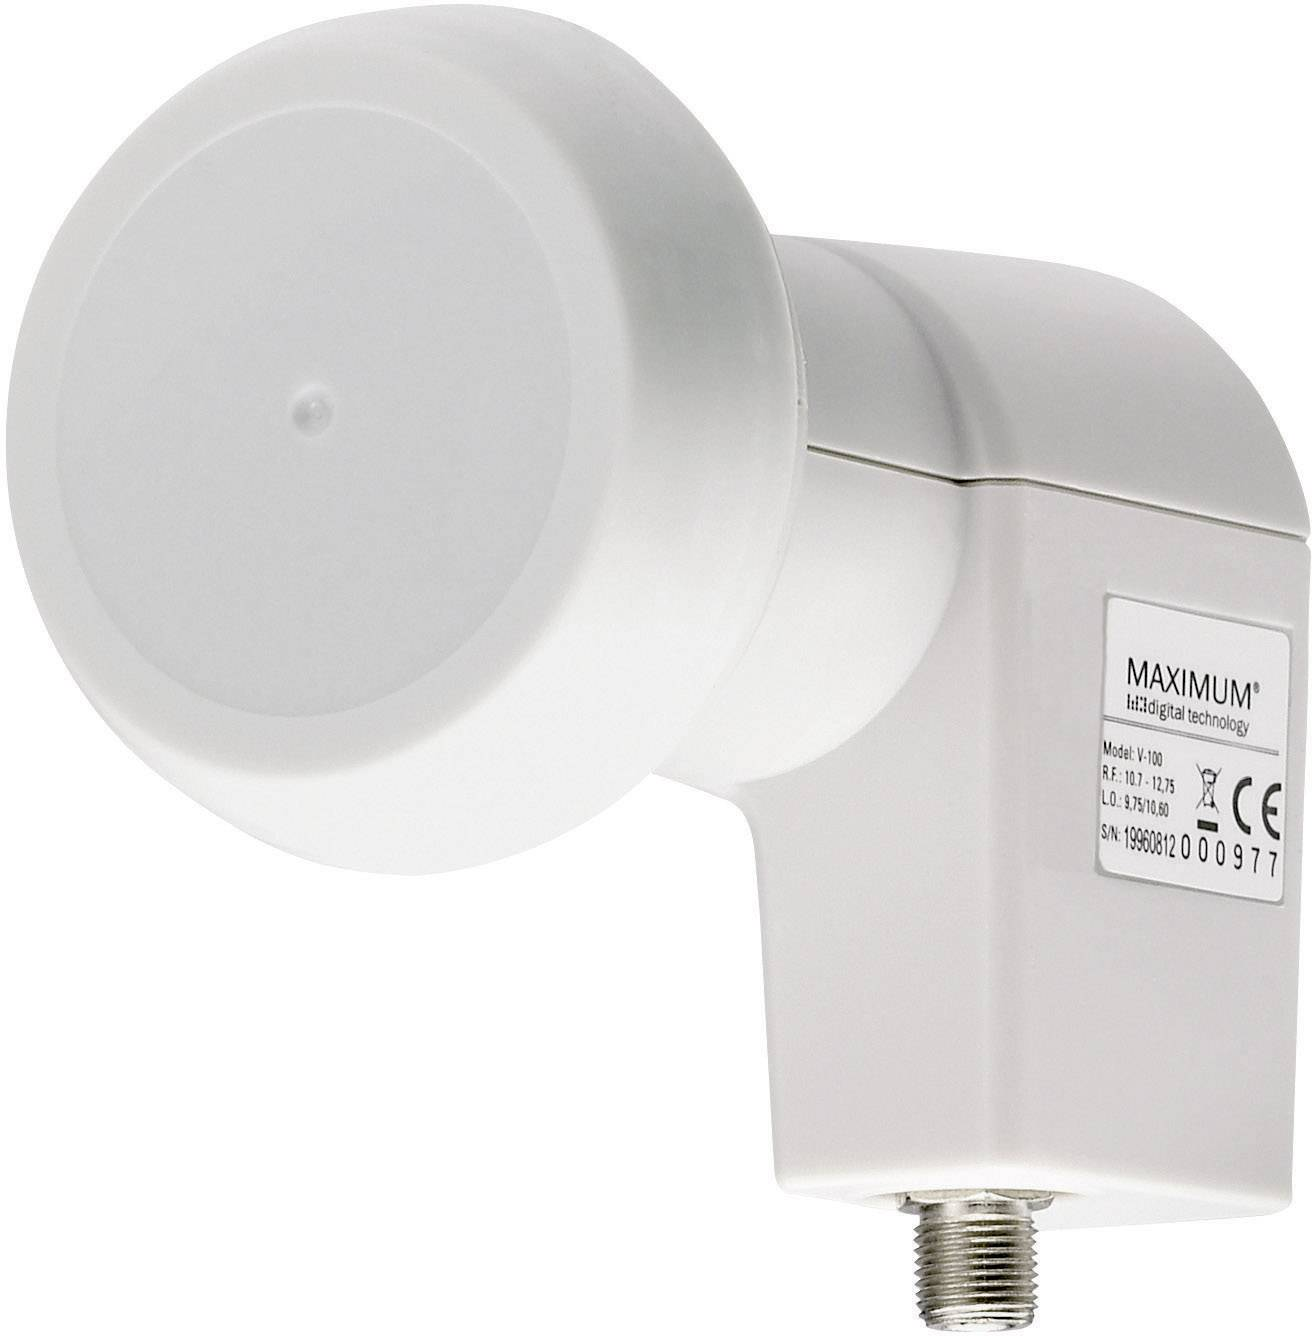 MAXIMUM PRO 1 SINGLE LNB